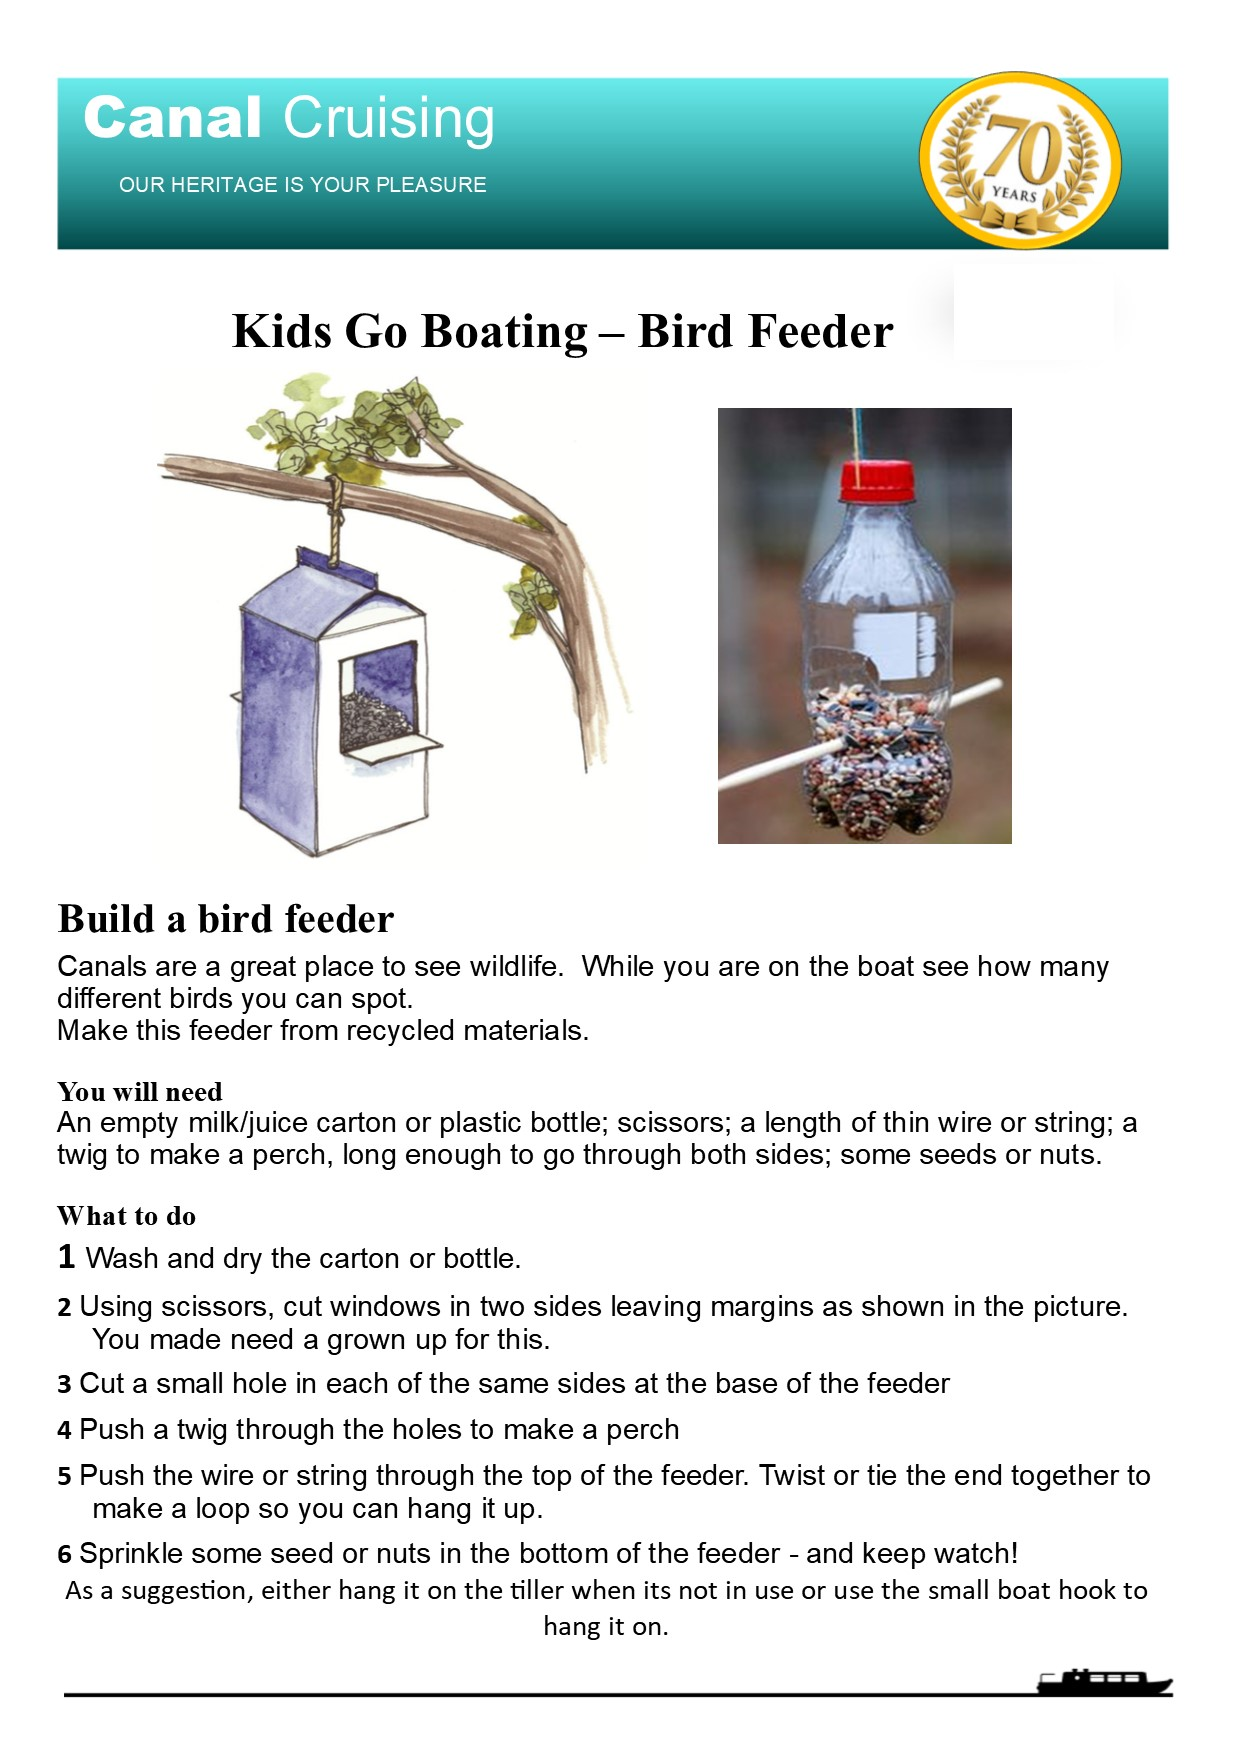 Kids Go Boating Bird Feeder